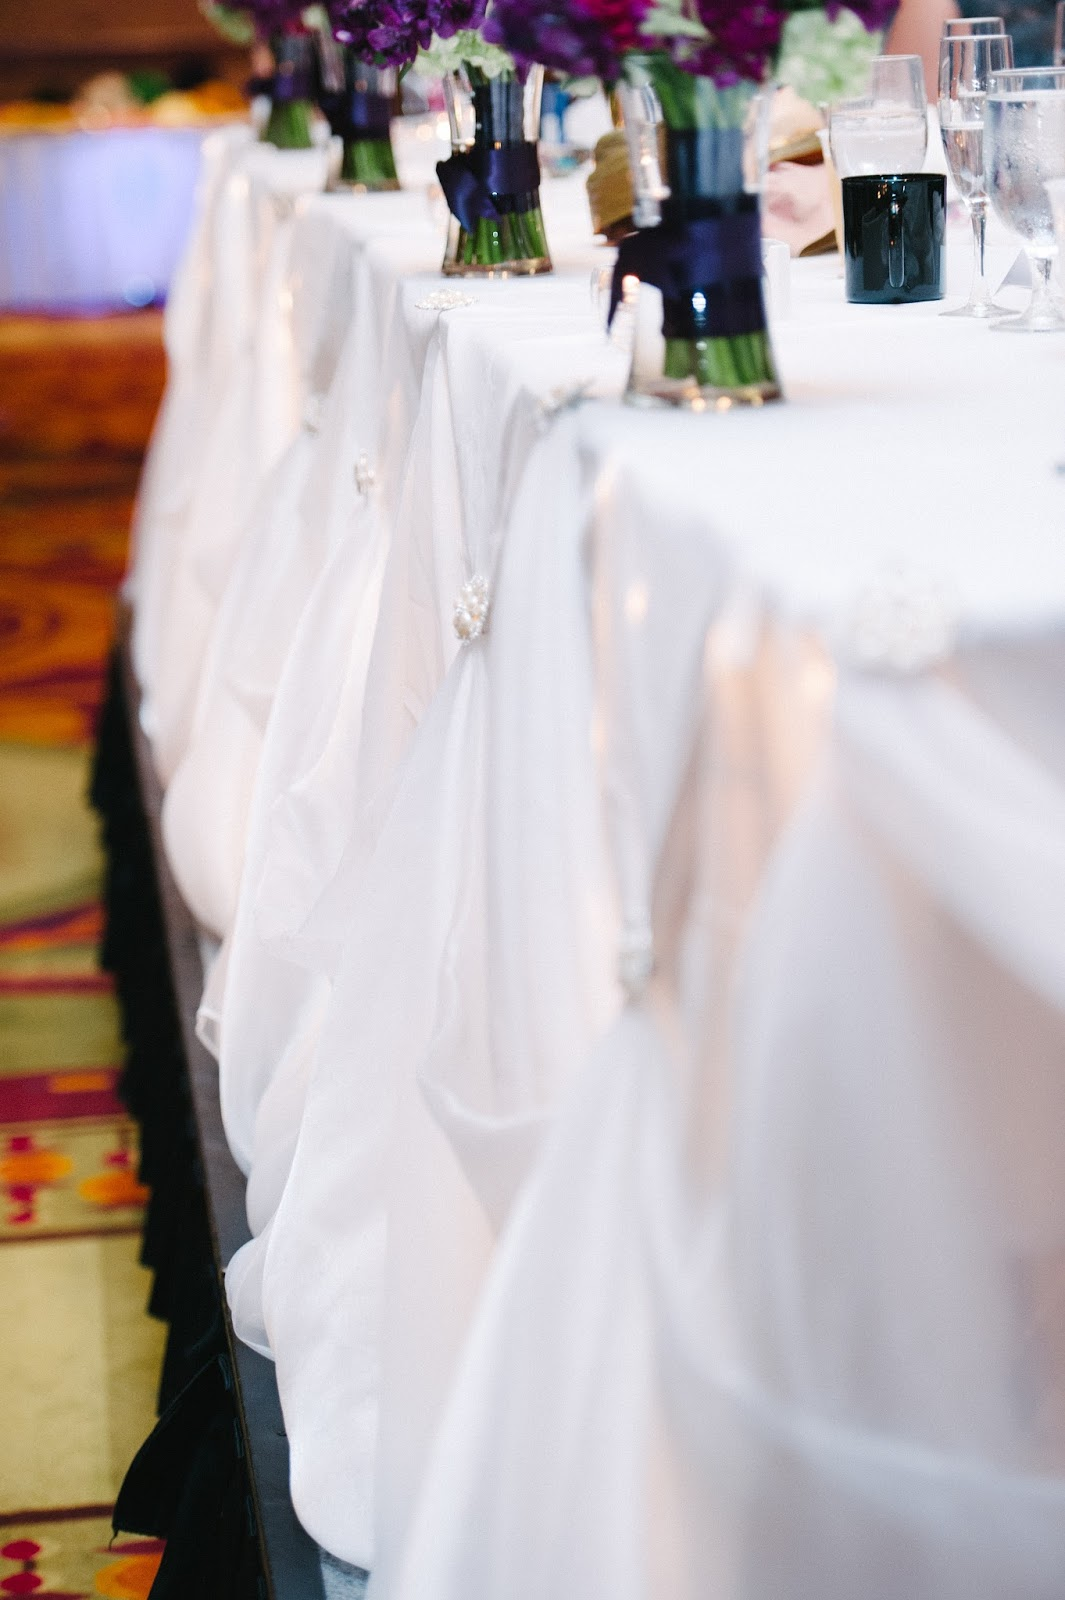 wedding chair covers east midlands types of living room chairs i do events tablecloths table